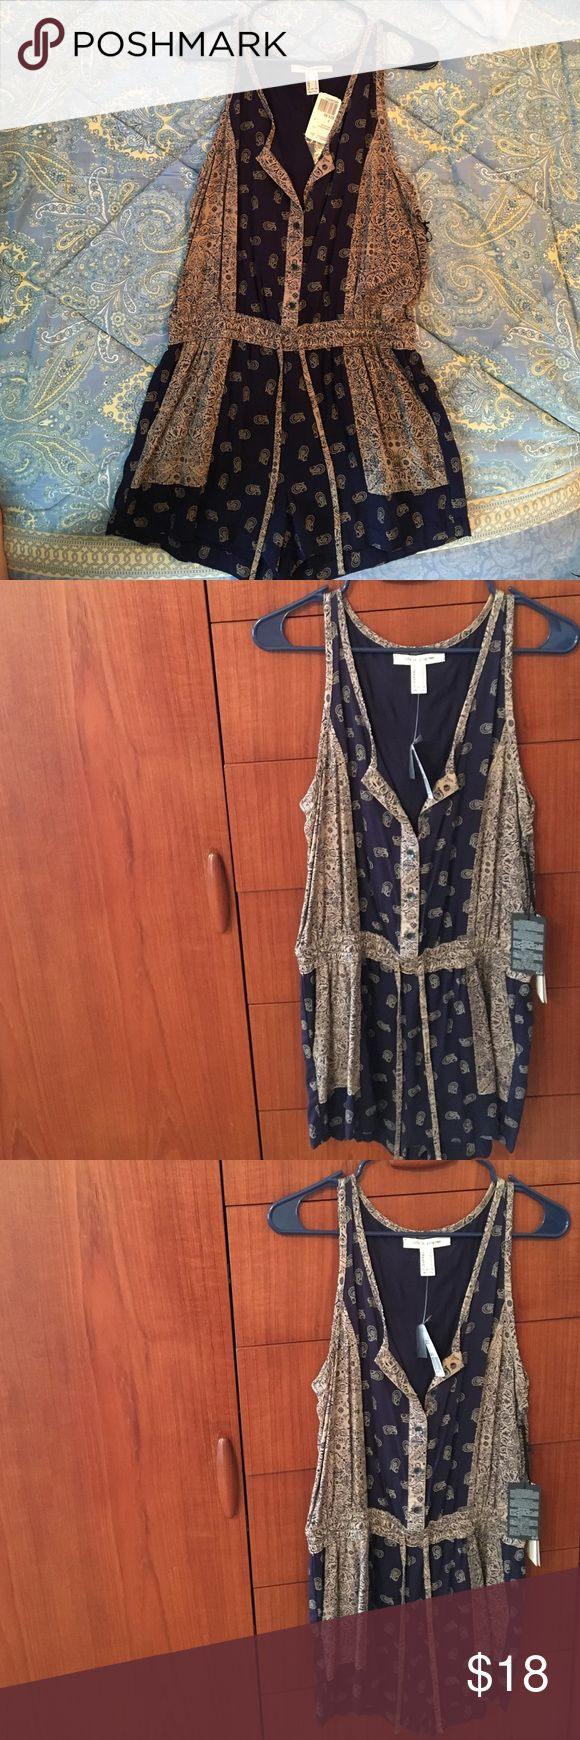 """""""Life in Progress"""" brand navy/tan printed romper This is a navy and cocoa (tan) printed romper from """"Life in Progress"""" brand from Forever 21, it has never been worn before and is a great spring or summer outfit! Forever 21 Other"""